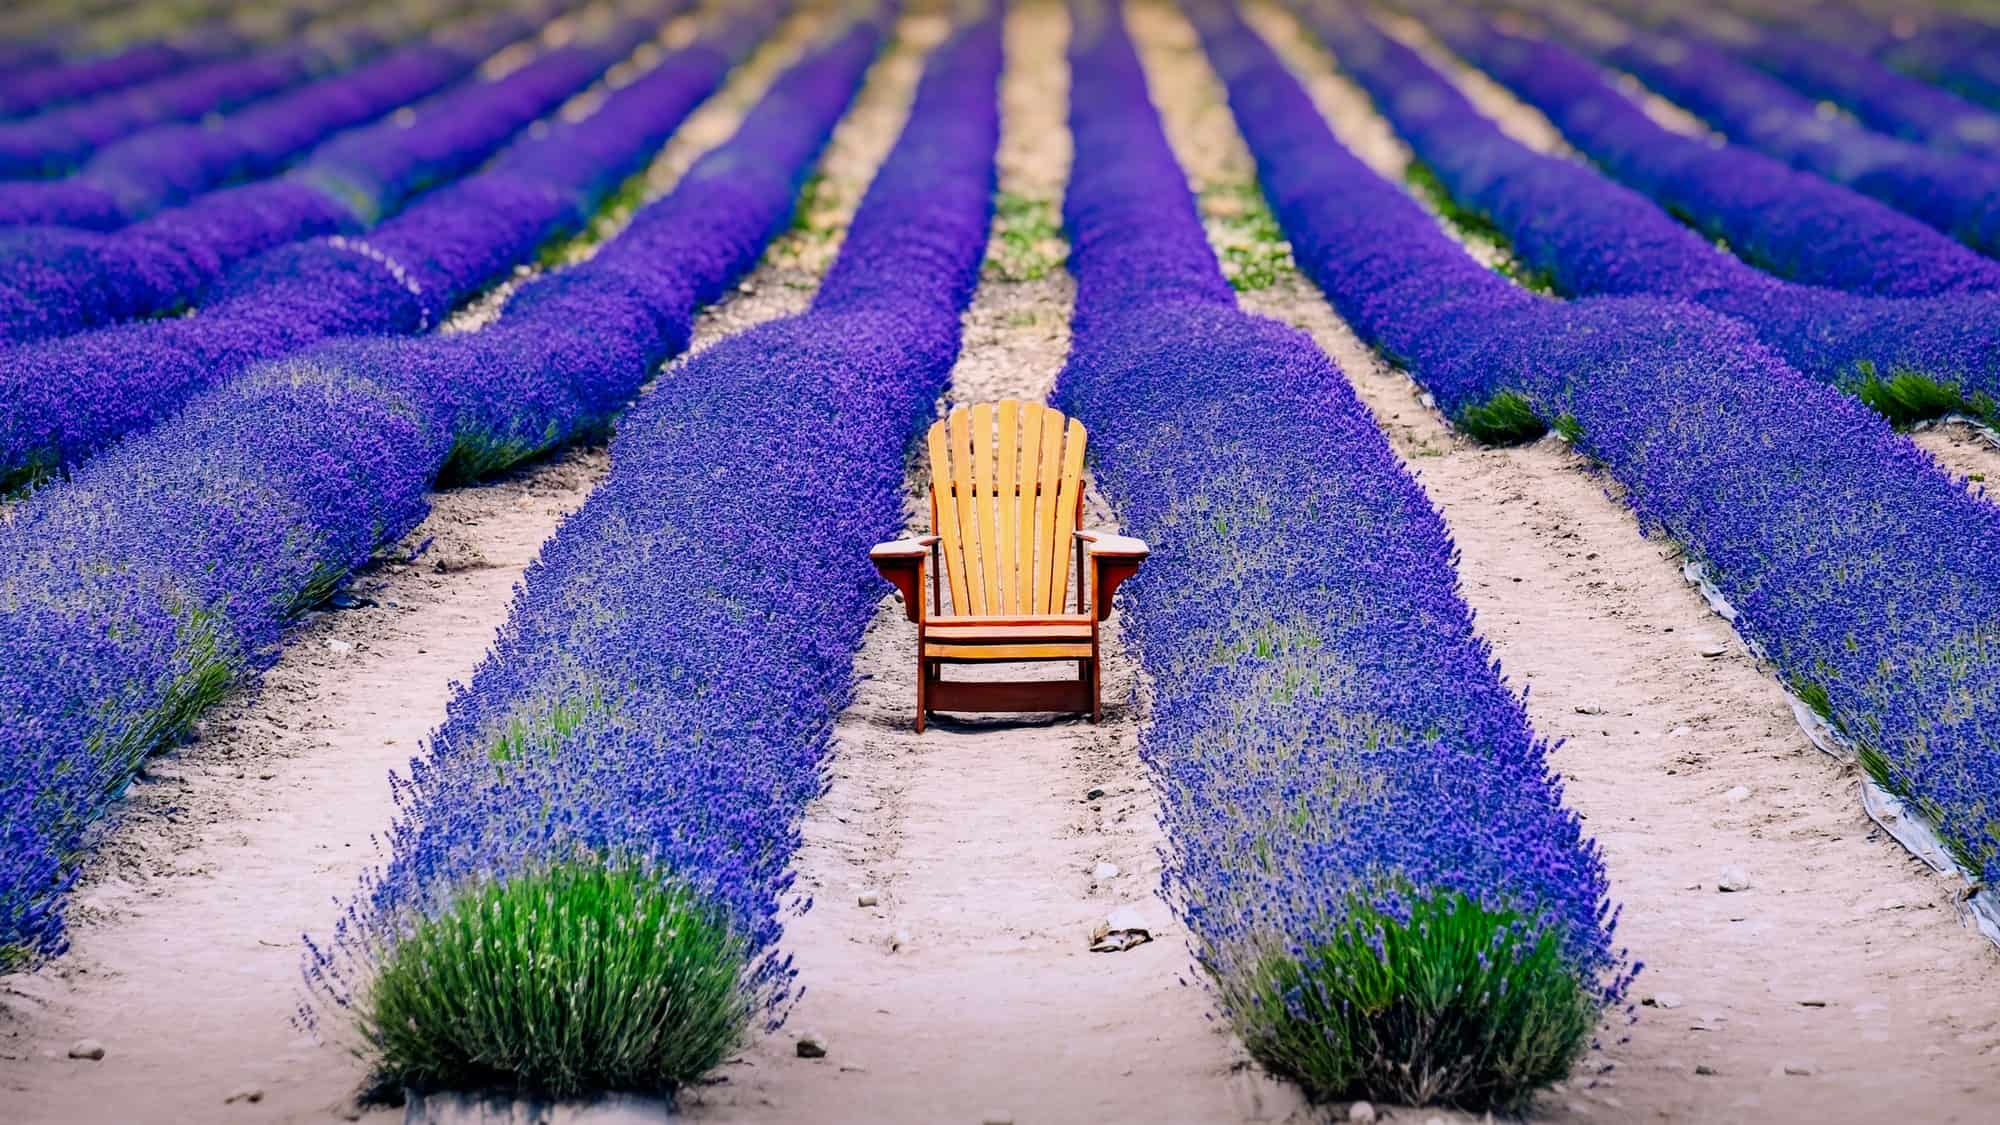 Landscape detail of colorful lavender field with wooden chair, relaxation concept, New Zealand